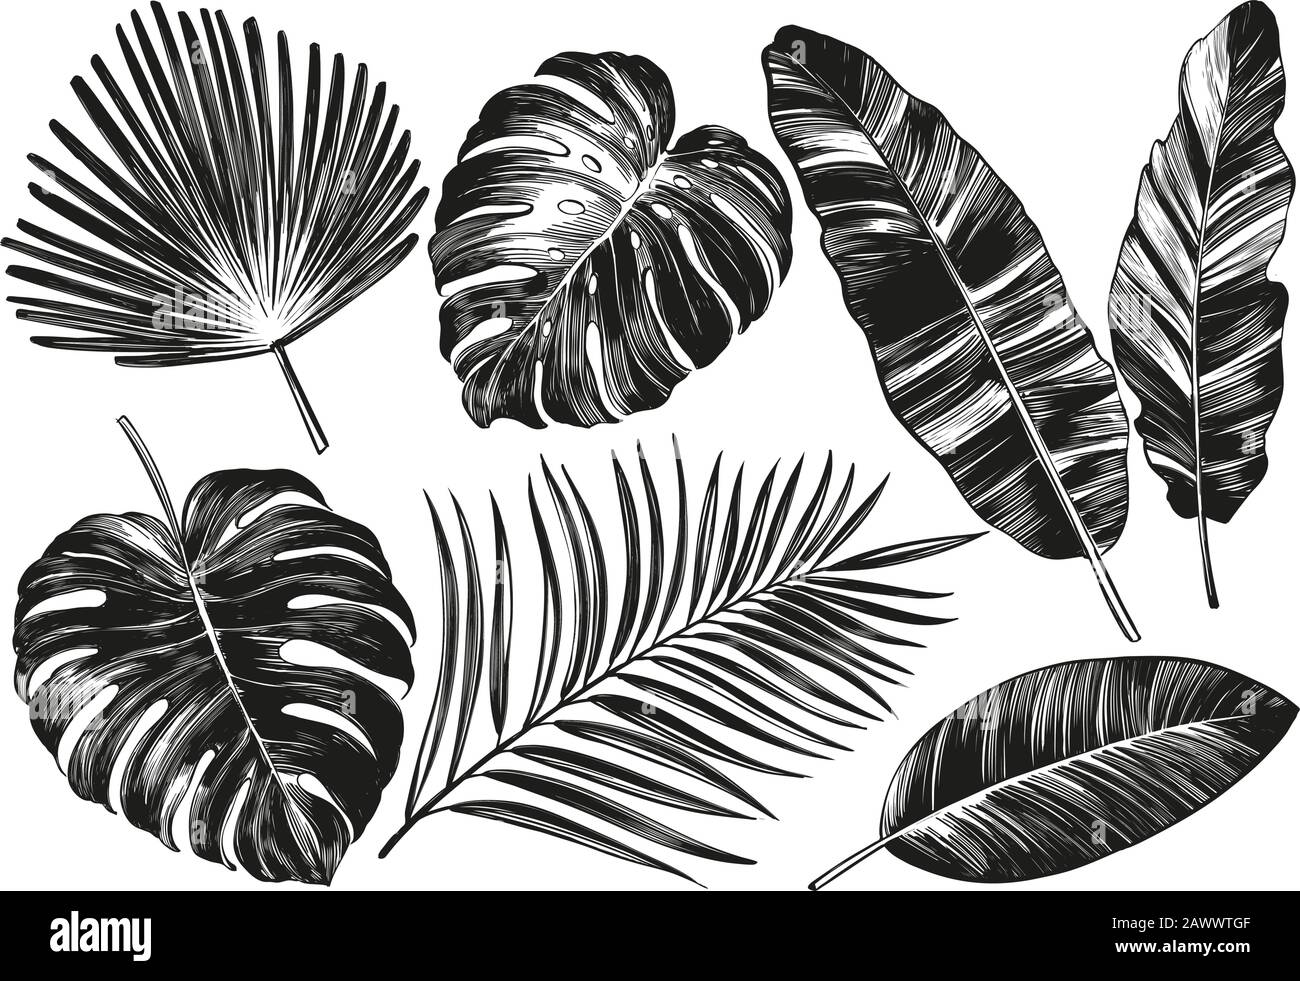 Tropical Leaves Jungle Botanical Floral Elements Palm Leaves Hand Drawn Vector Illustration Realistic Sketch Isolated On White Background Stock Vector Image Art Alamy Download tropical leaves images and photos. https www alamy com tropical leaves jungle botanical floral elements palm leaves hand drawn vector illustration realistic sketch isolated on white background image342931471 html